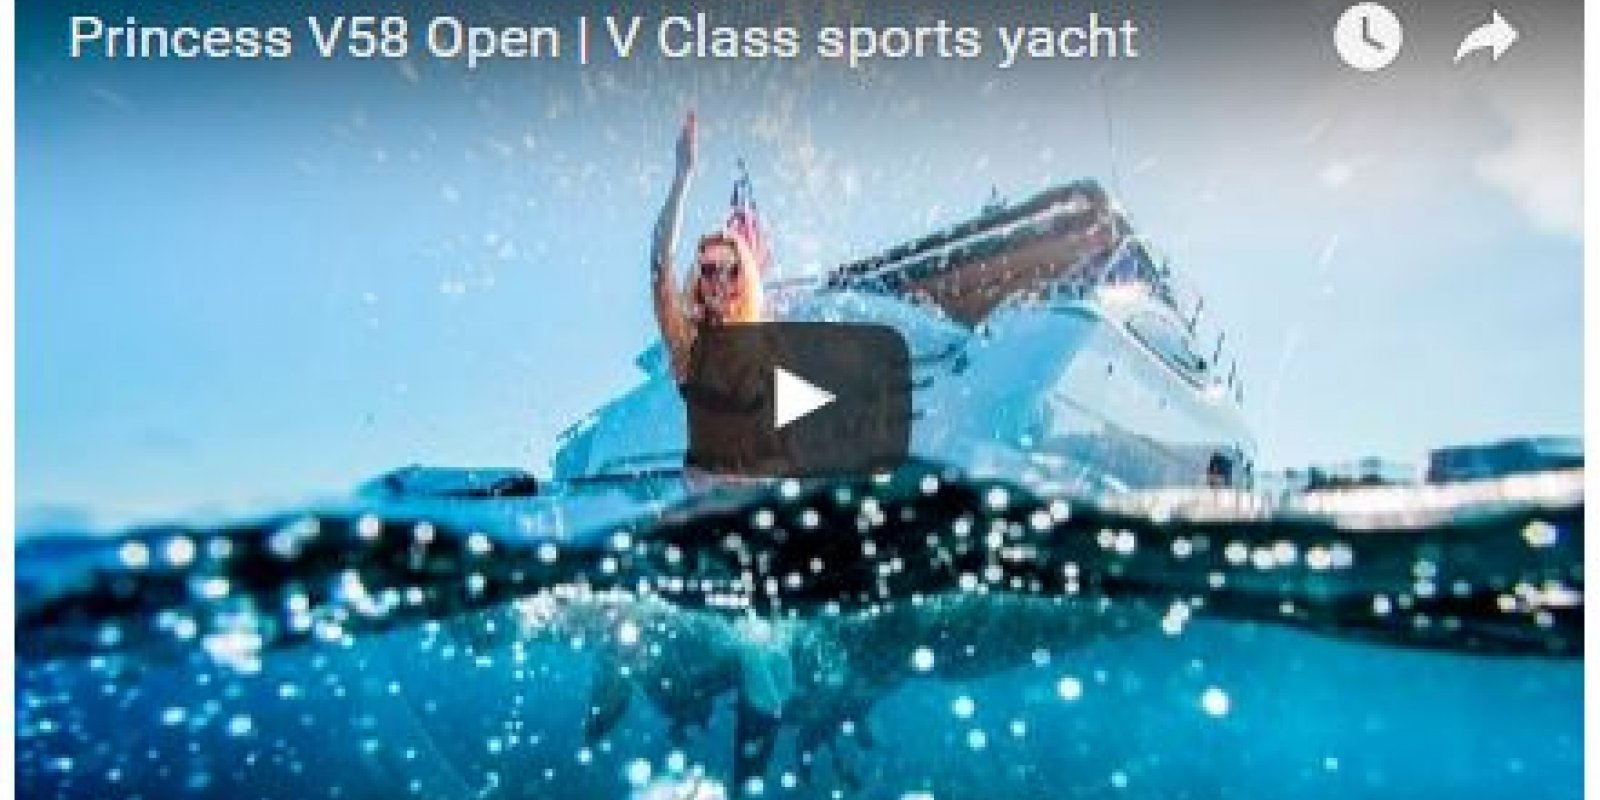 Video of the New PRINCESS V58 Open